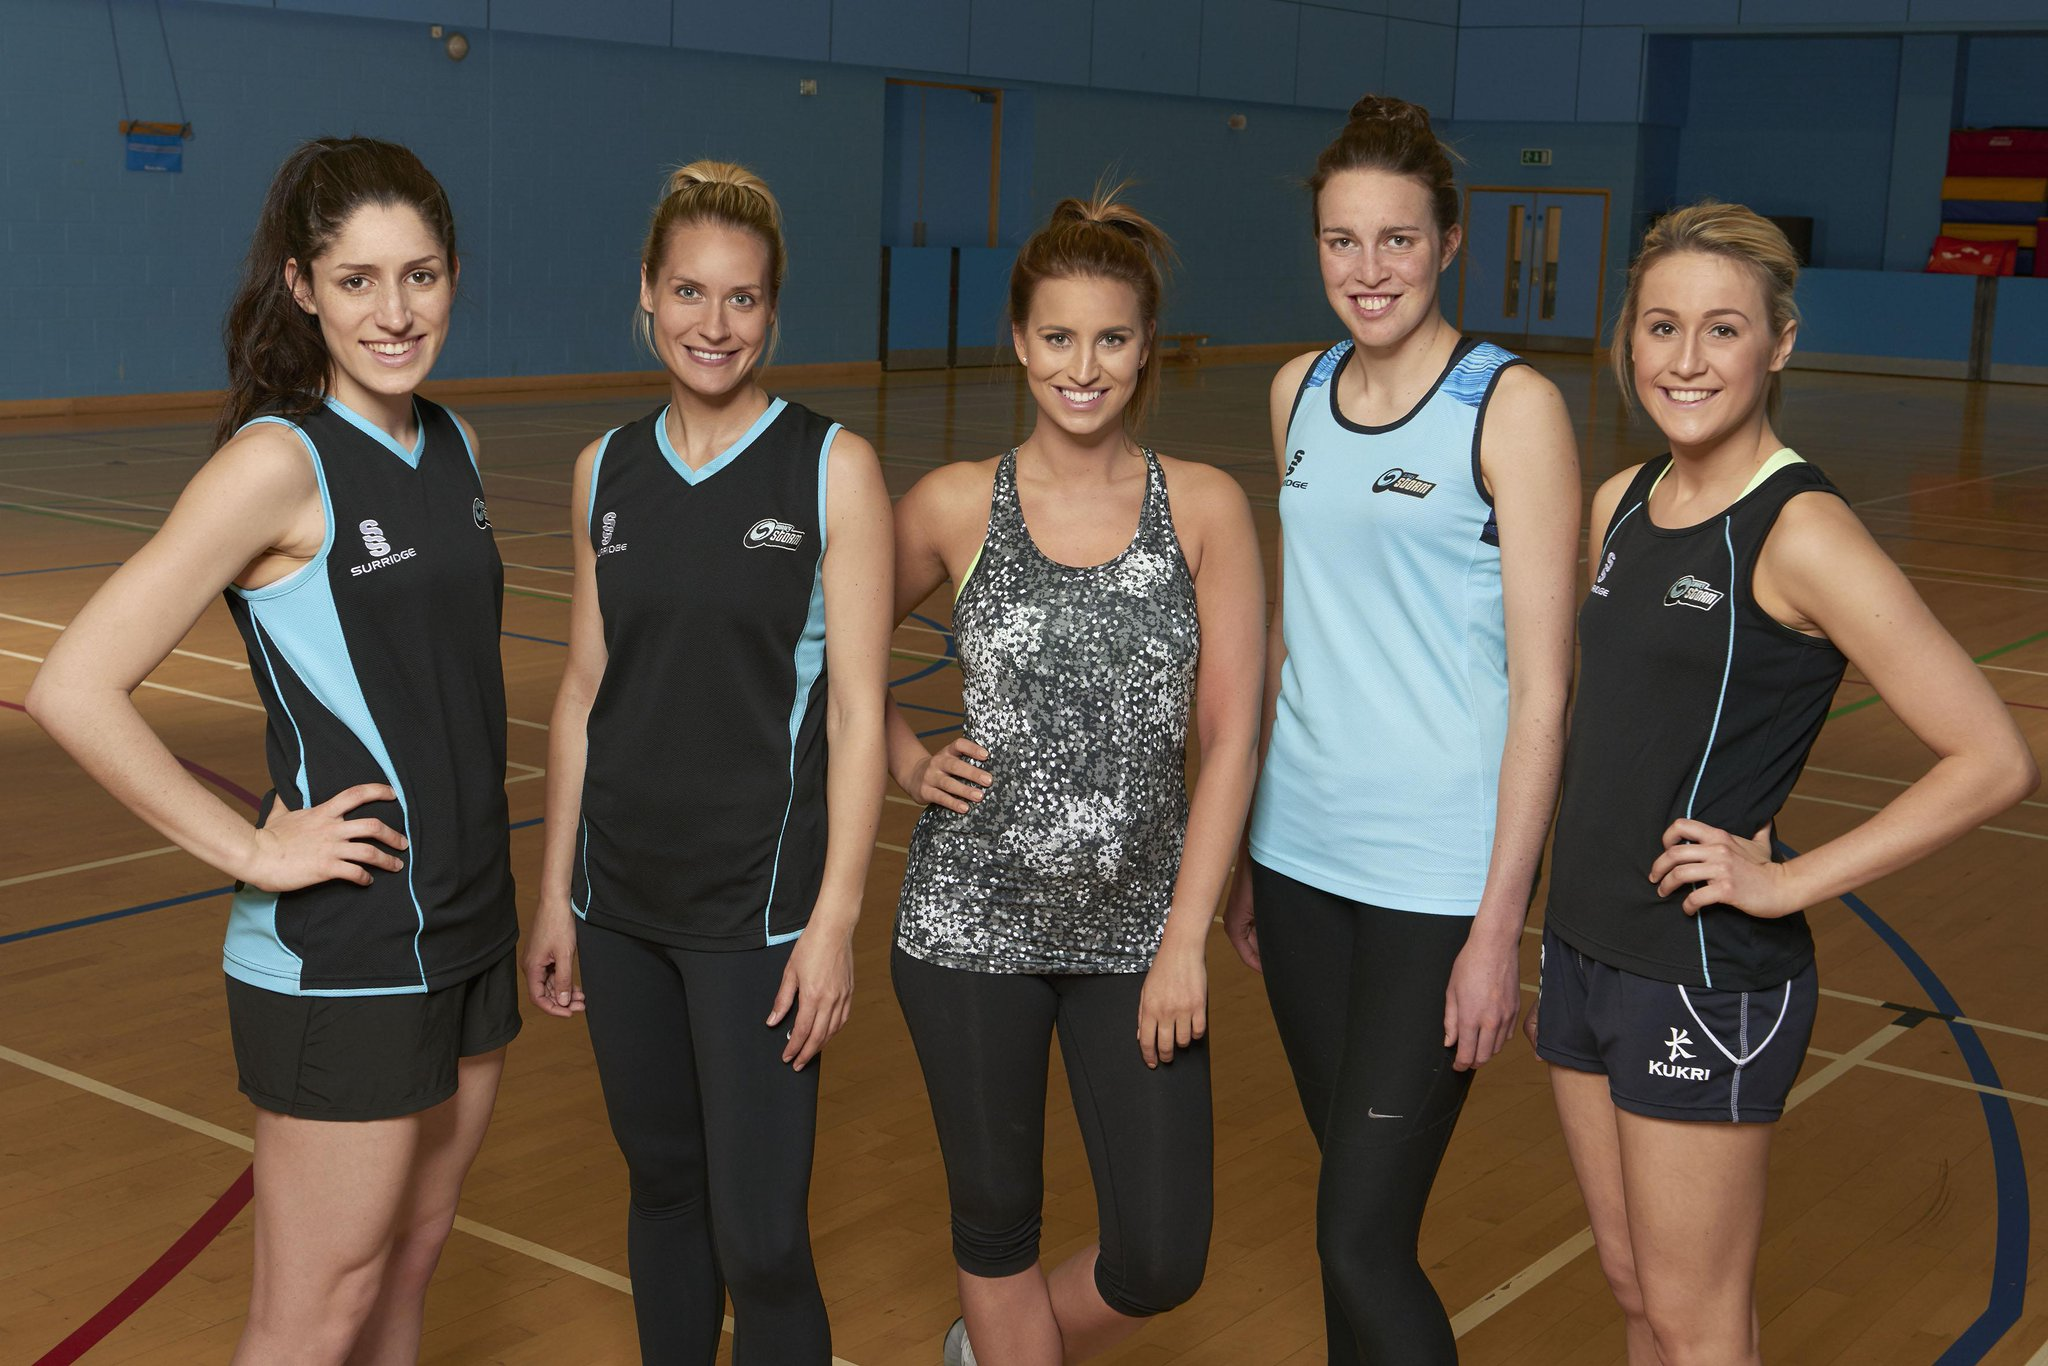 RT @SurreyStorm: Look out for @fernemccann training with Storm in today's @SkyNetball coverage on SS4 from 4pm! #TOWIE http://t.co/yLHRTZaz…